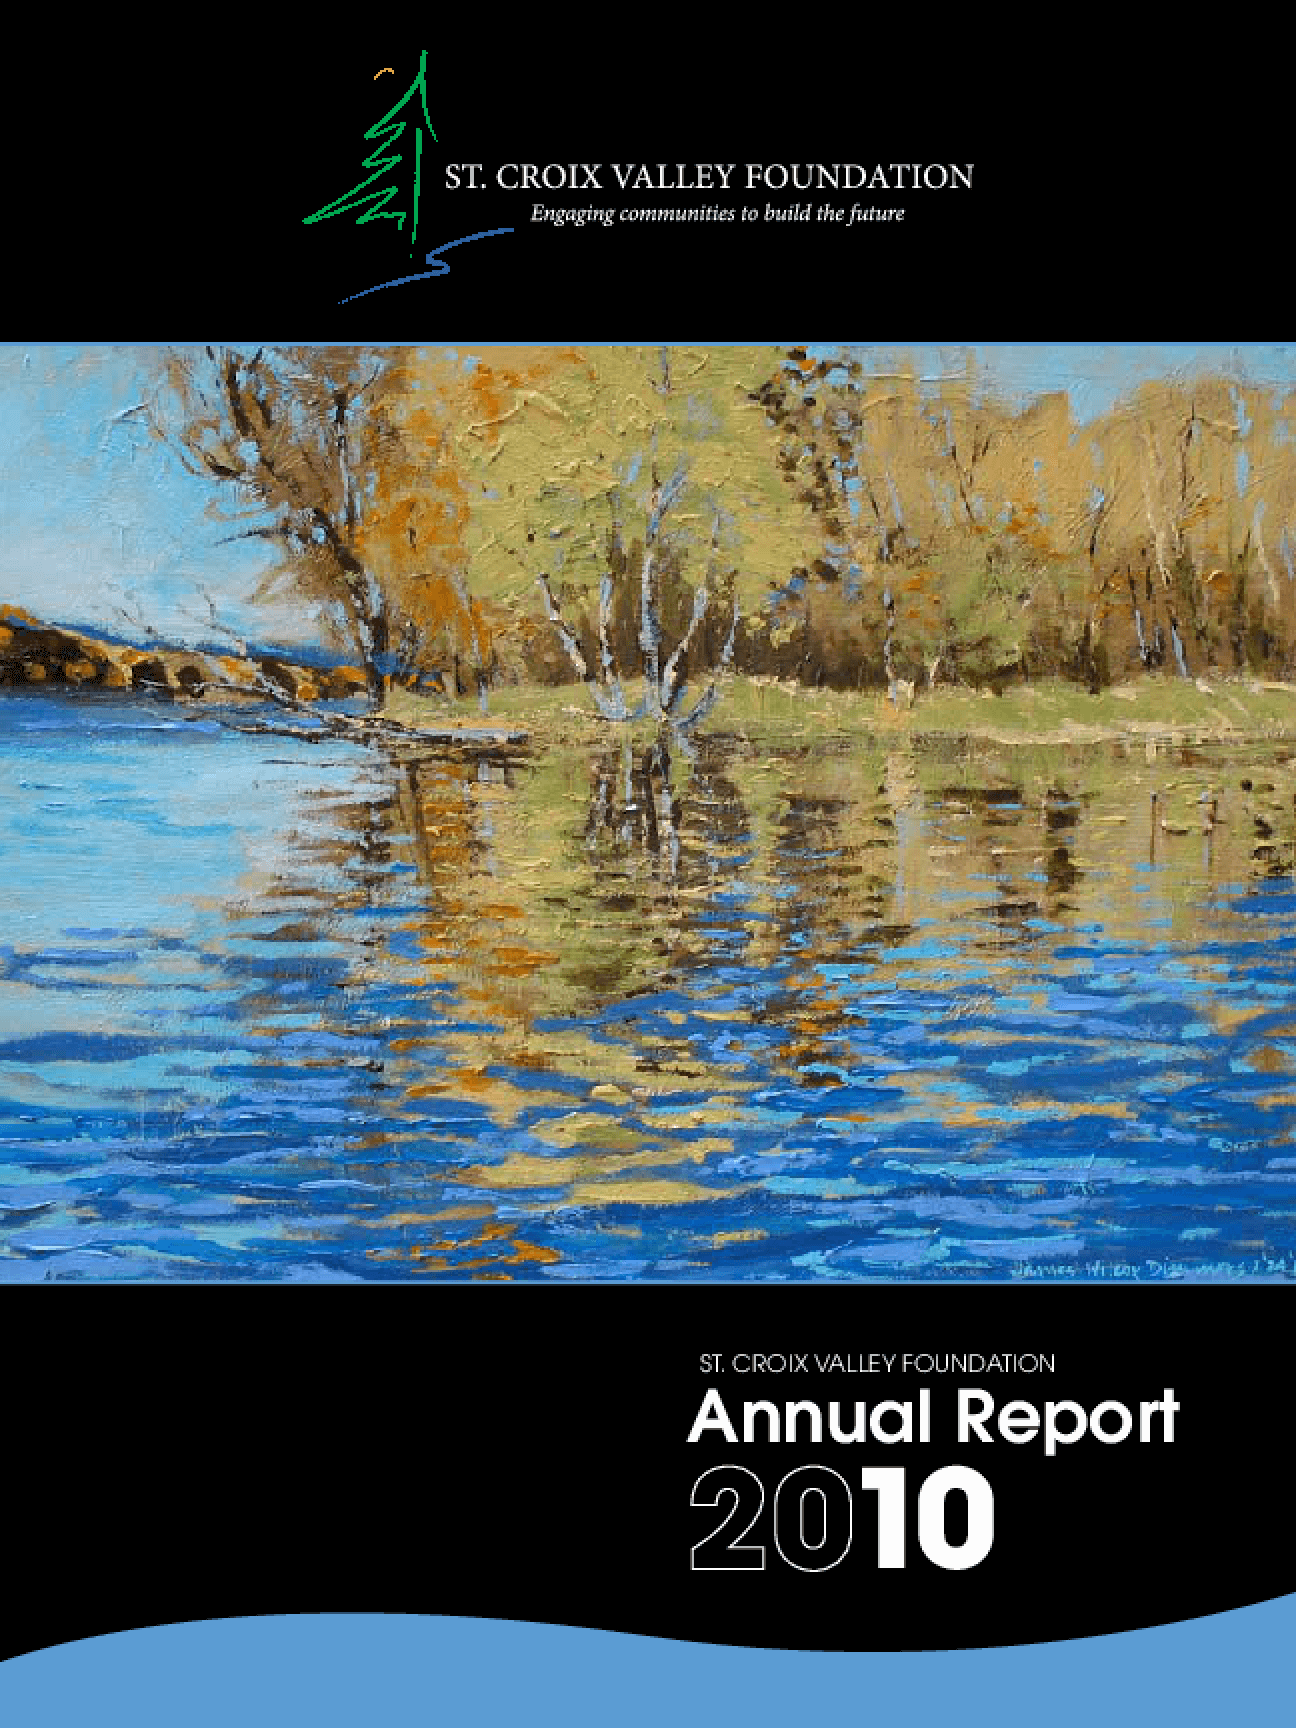 St. Croix Valley Foundation 2010 Annual Report